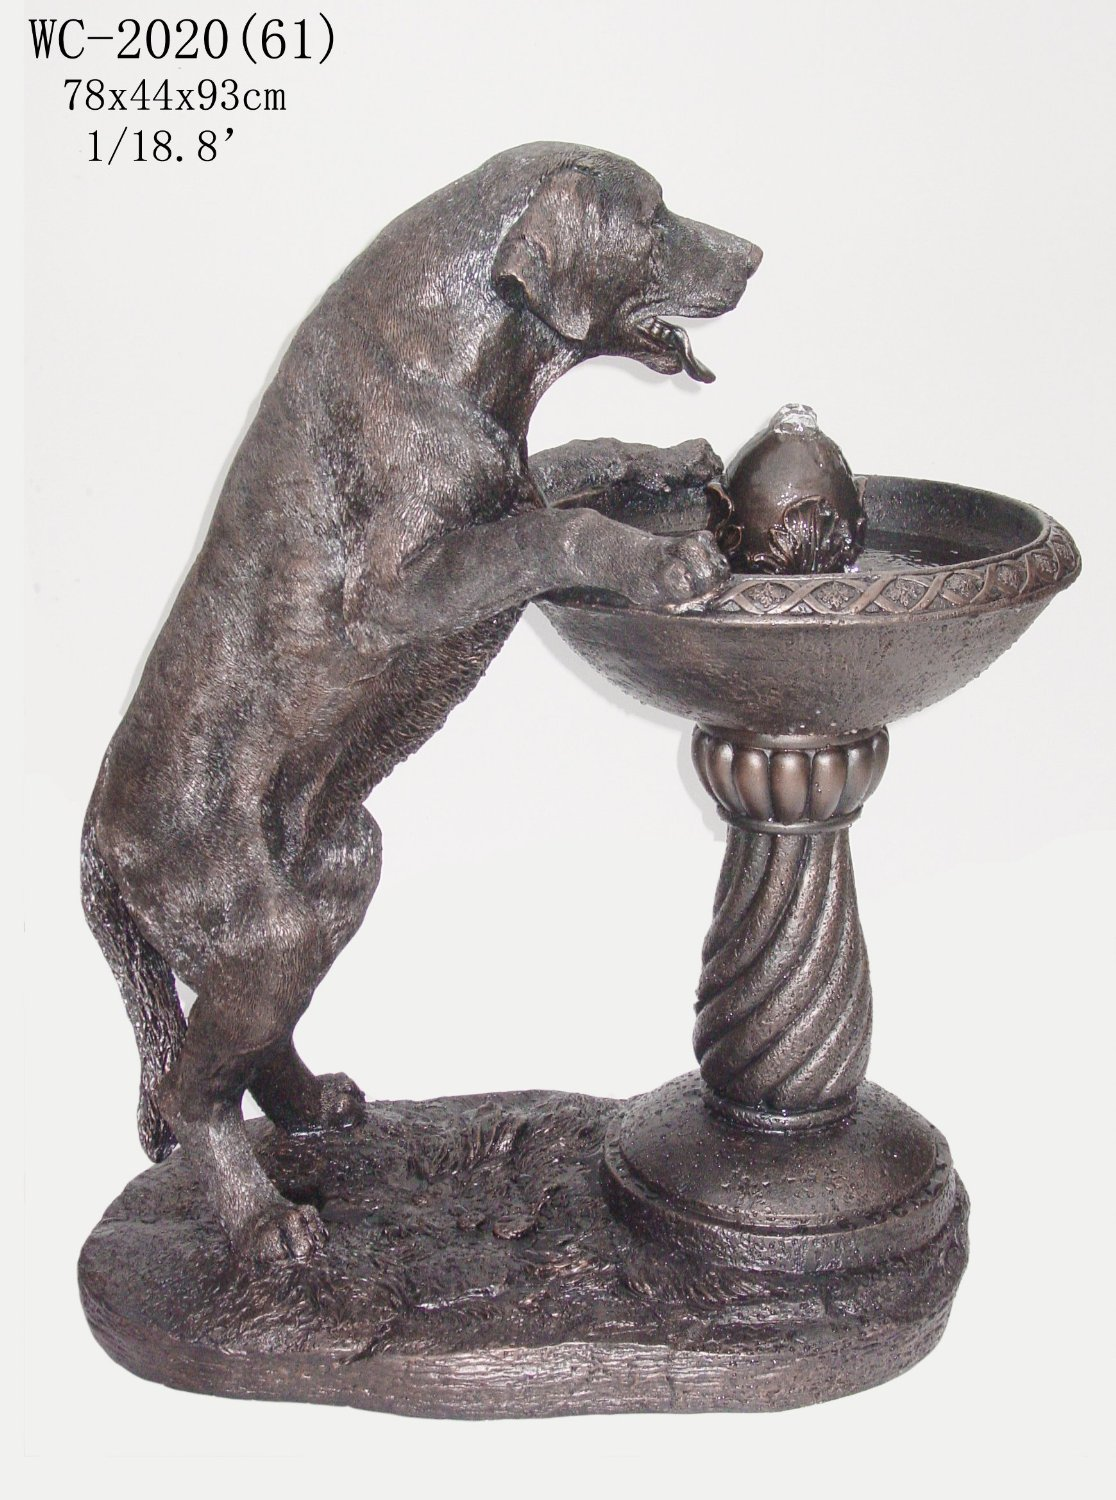 Labrador Dog Statue Sculpture Water Fountain